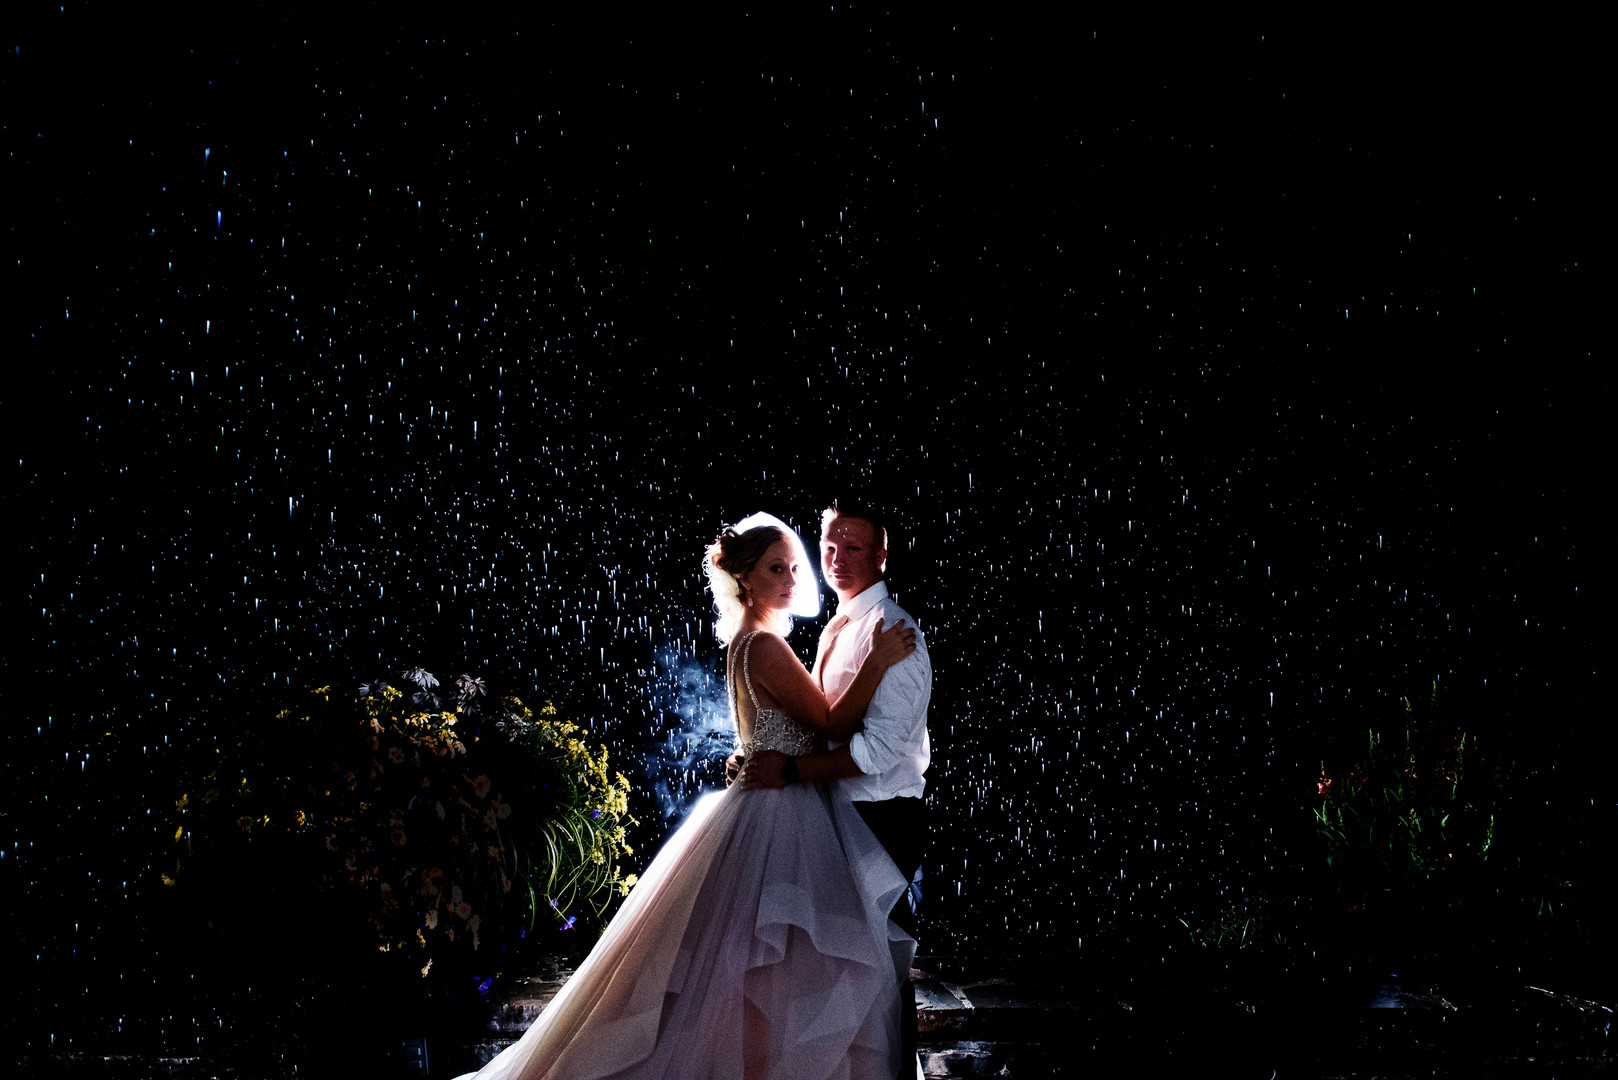 Rainy night on a wedding day isn't so bad!